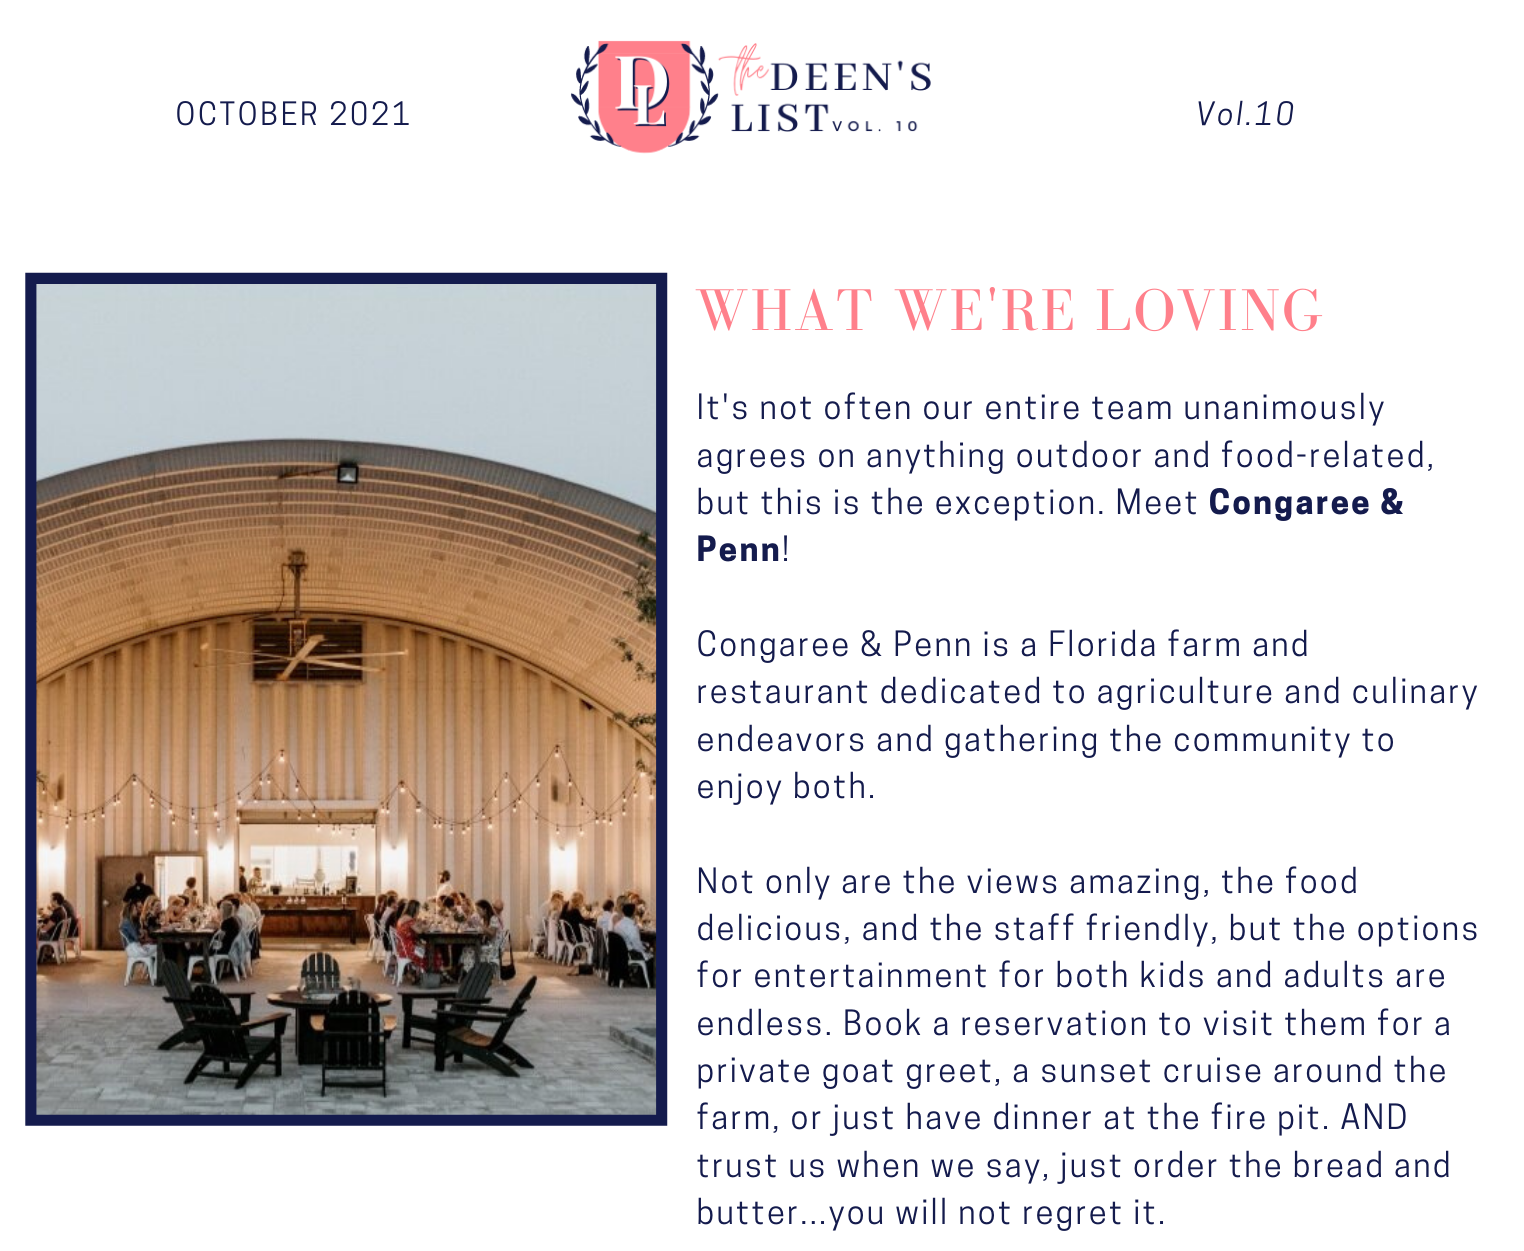 October 2021 Deen's List Congaree and Penn